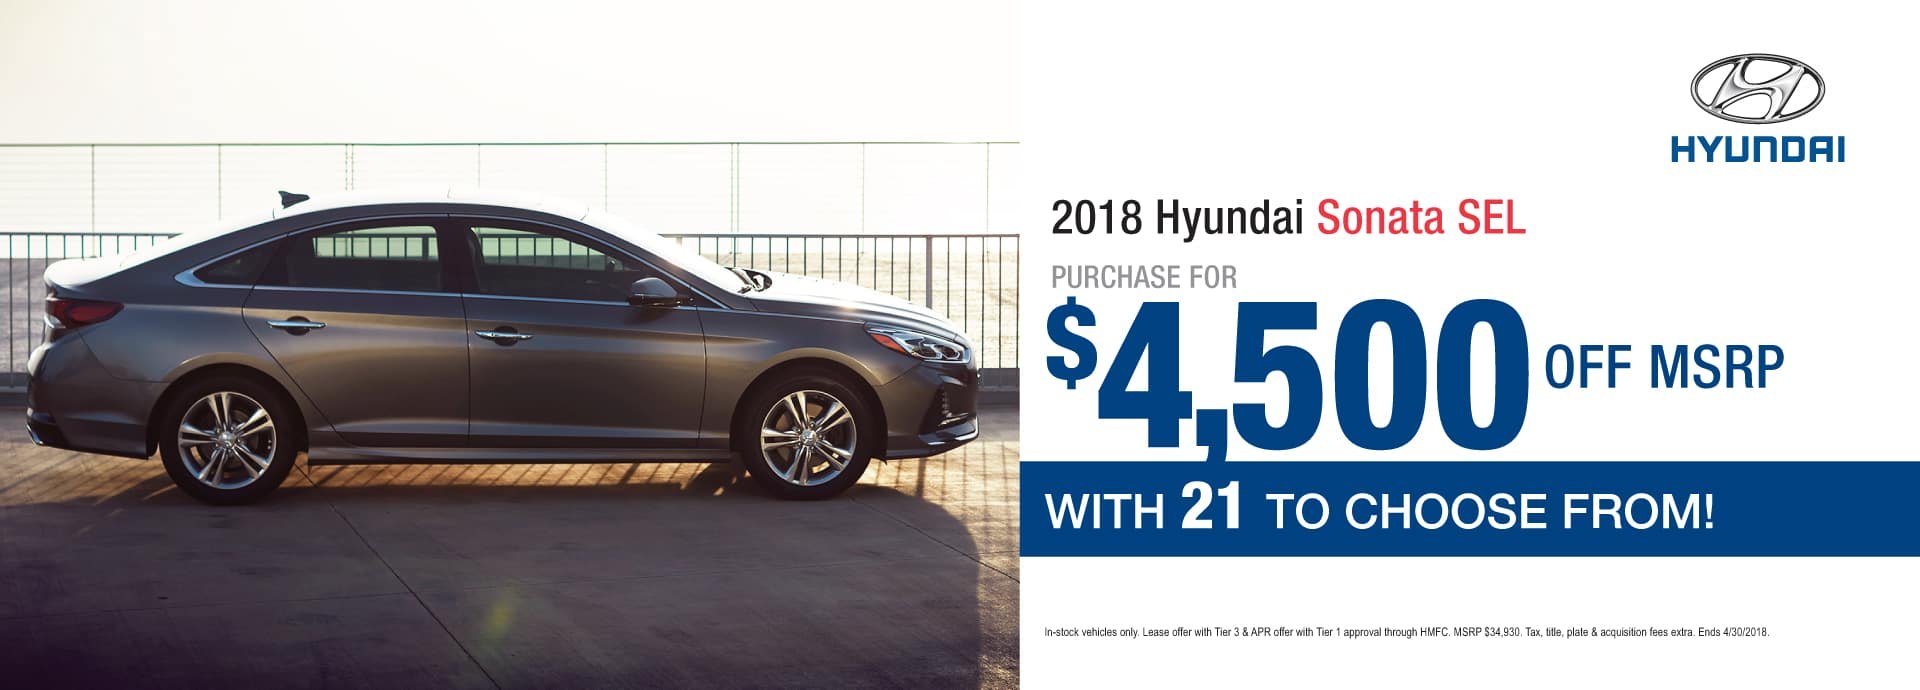 tucson buy leasing lease suv eternity hyundai